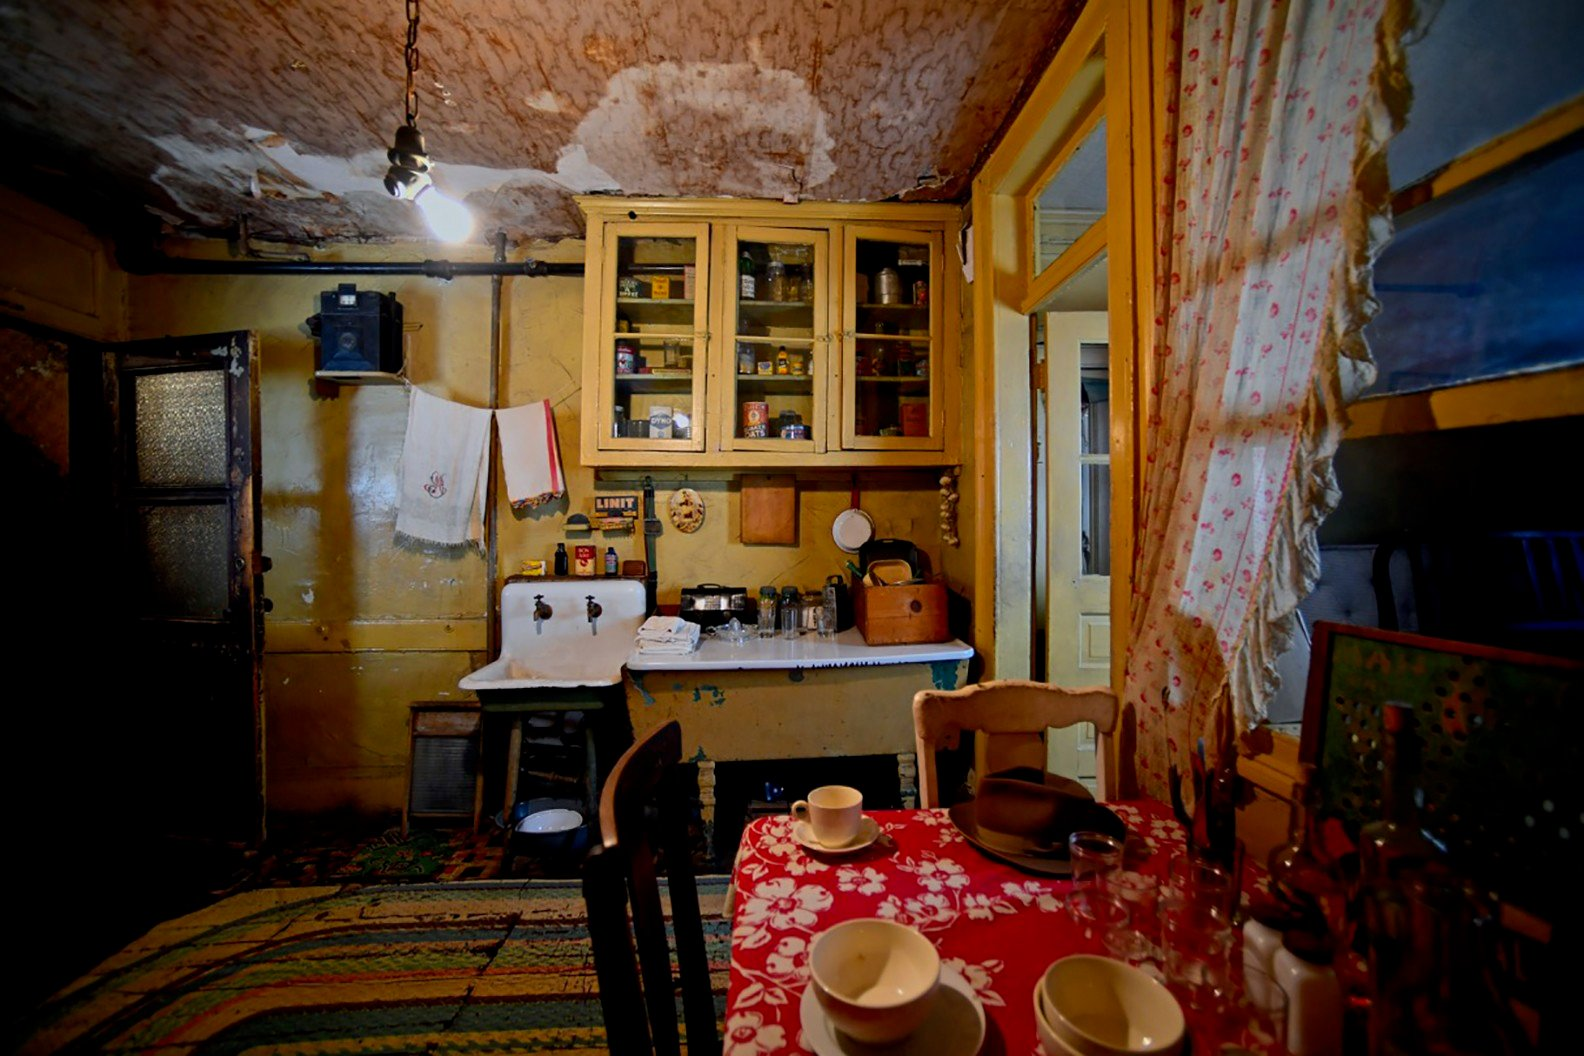 Kitchen in the recreated apartment of the Baldizzi family